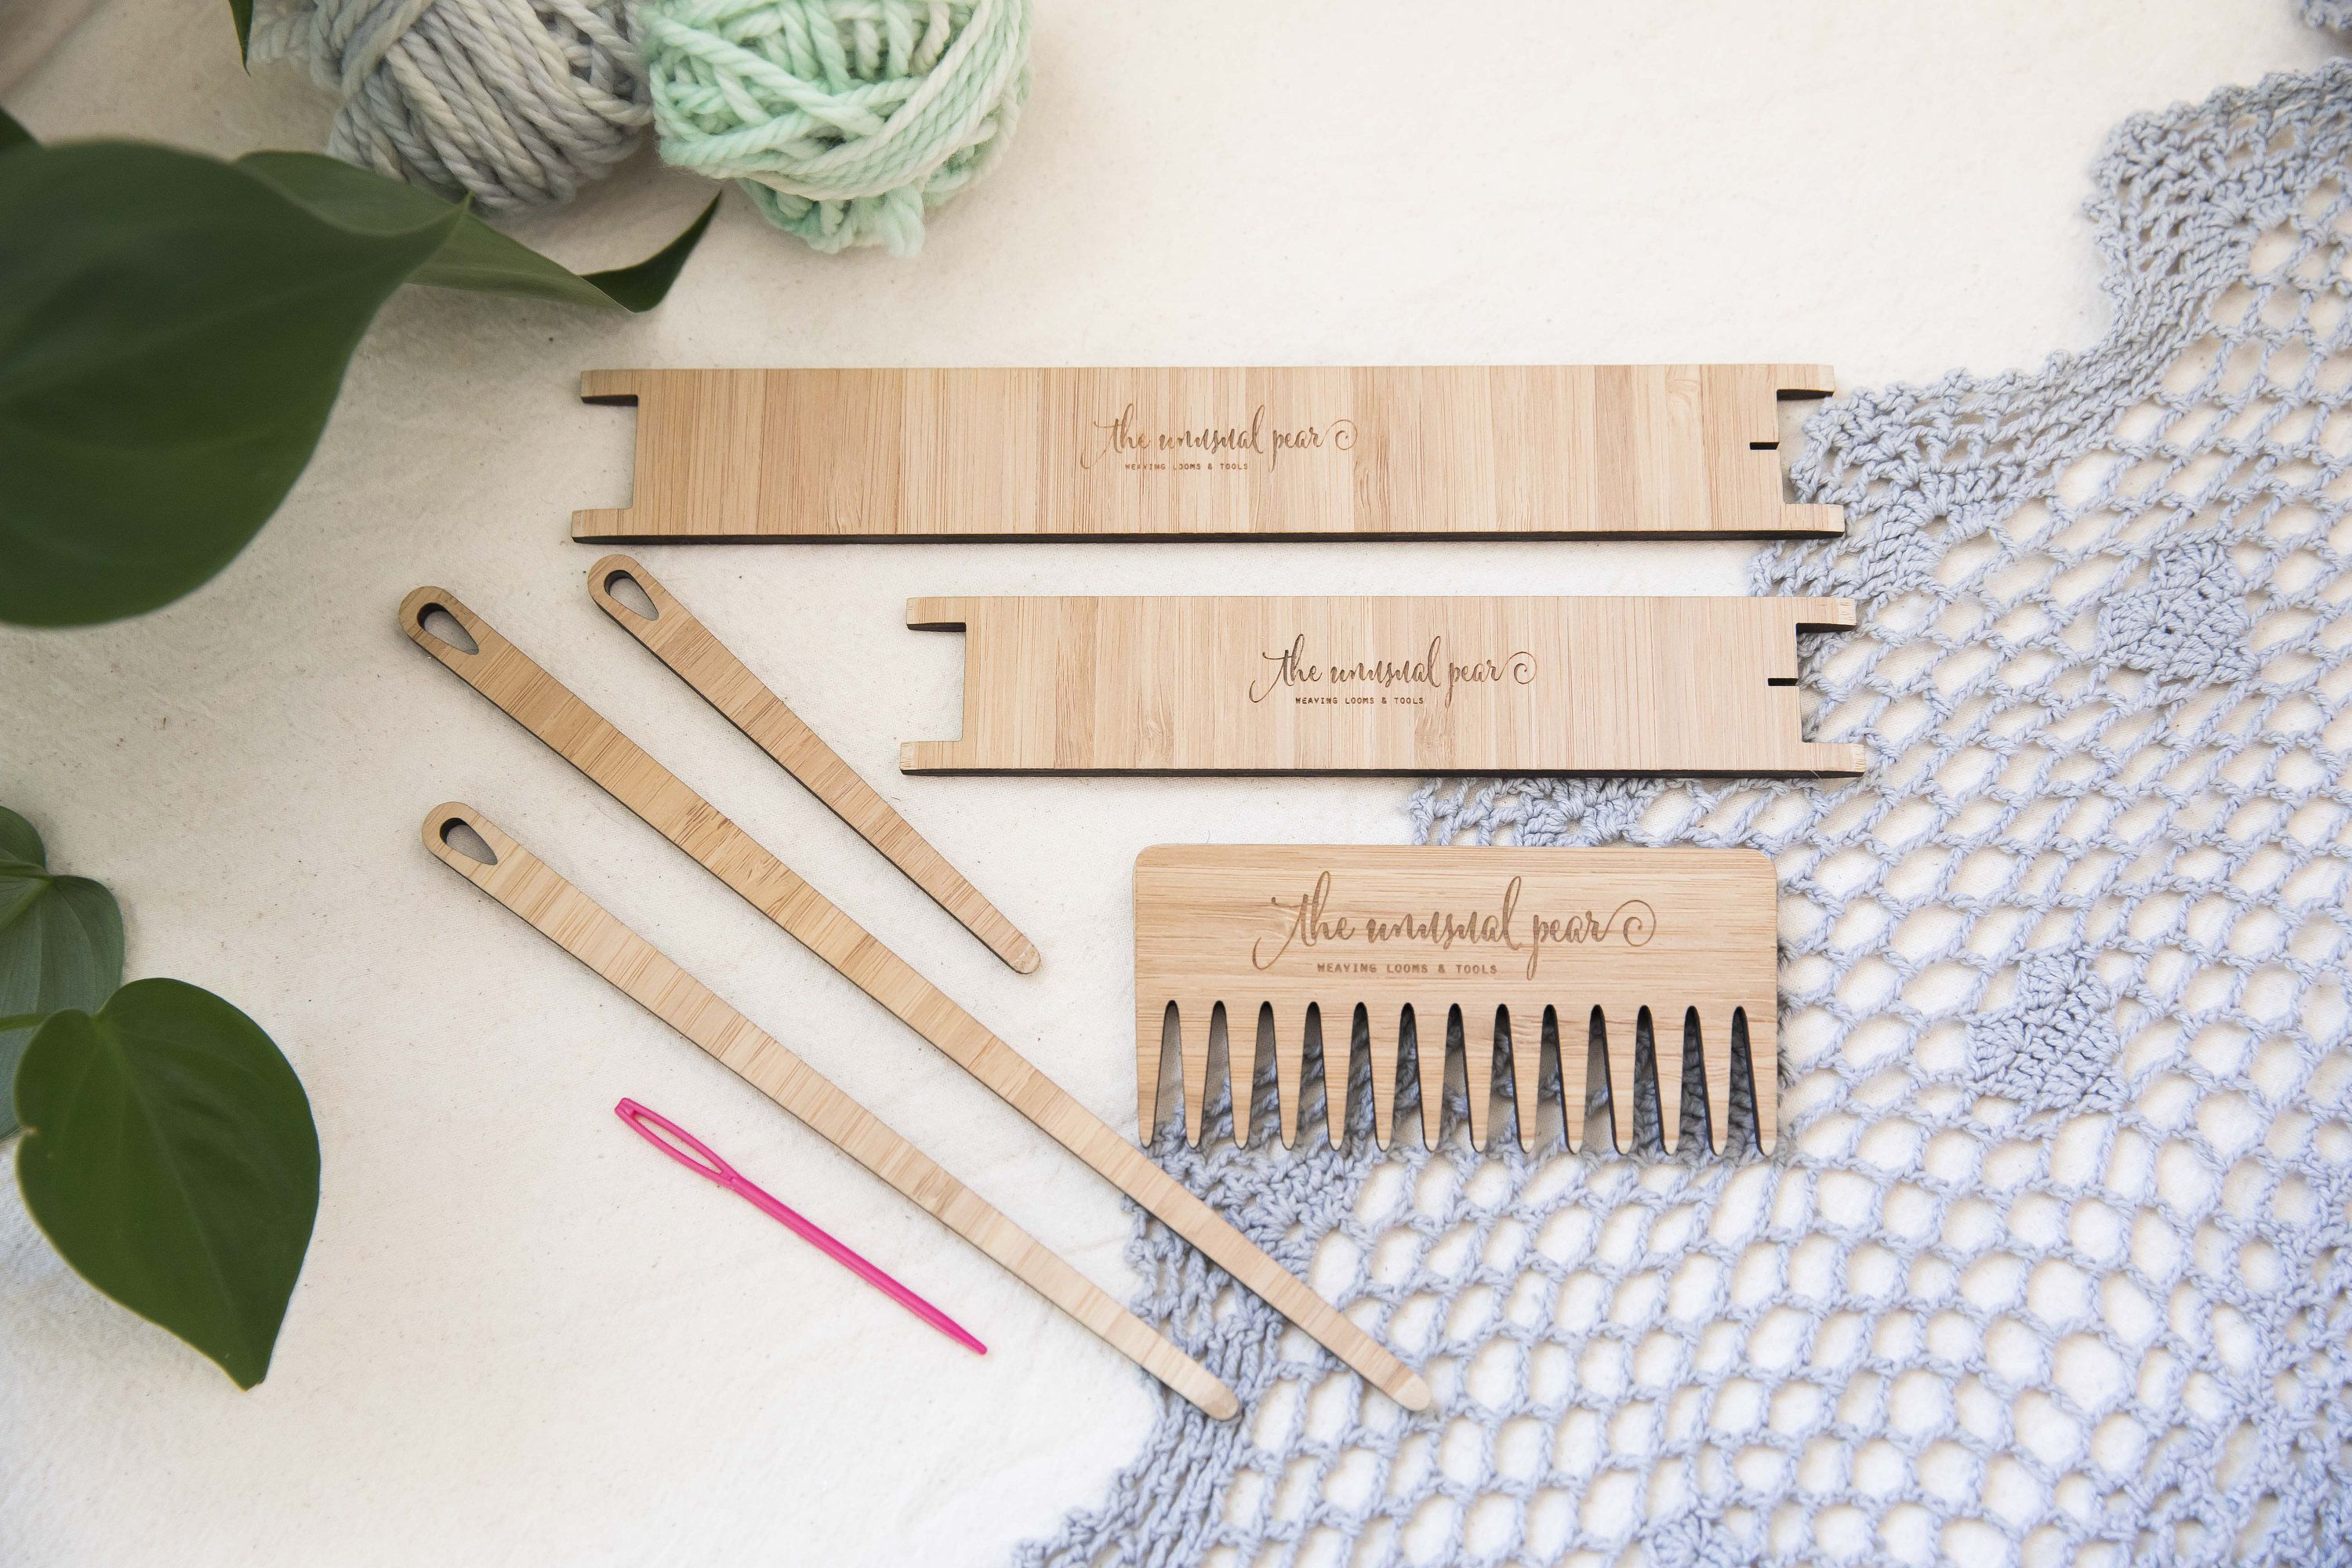 Complete Weaving Tool Kit   2 X Shuttles 4 X Needles 1 X Weaving Comb By